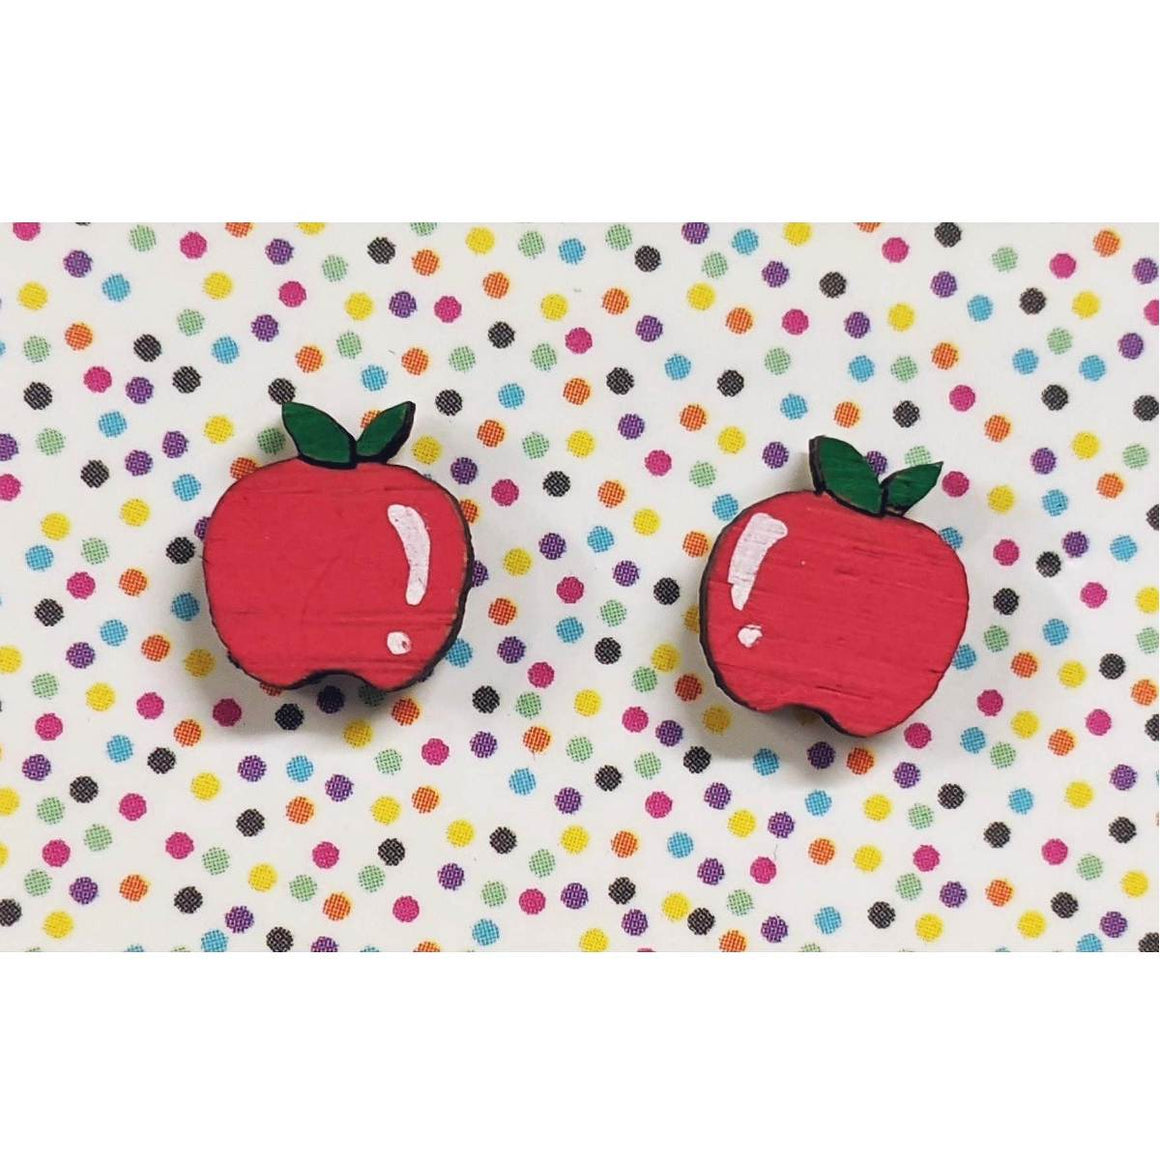 A pair of intricately hand coloured studs depicting rosy red apples with green leaves. The peeled layers hang down. Displayed on a rainbow polka dot background.